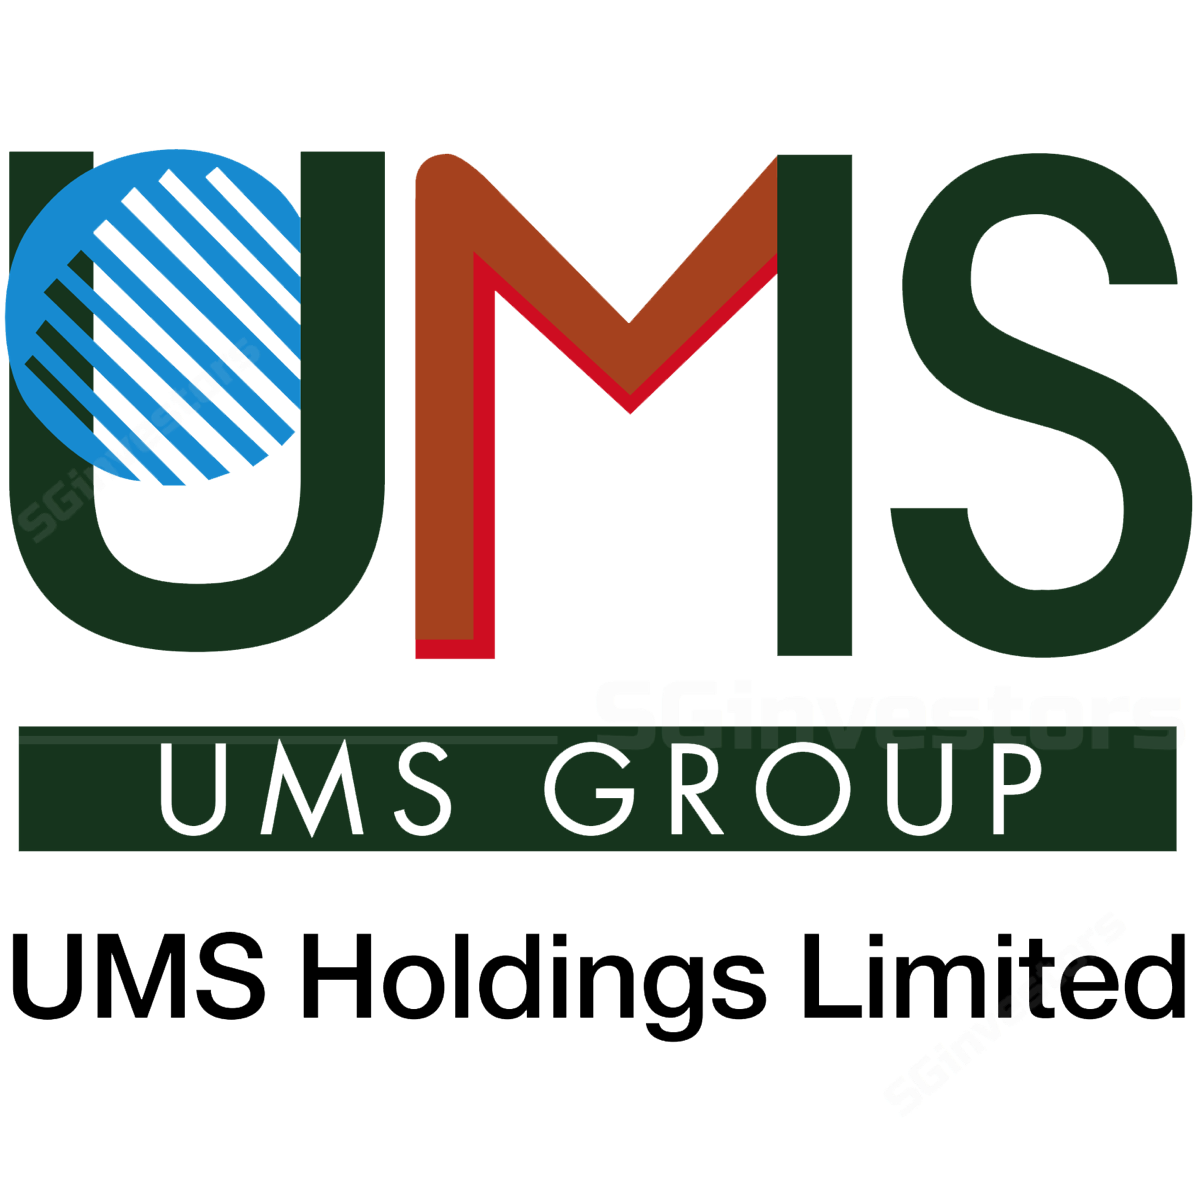 UMS Holdings - DBS Vickers 2018-05-14: Higher Gross Margins On Improved Mix